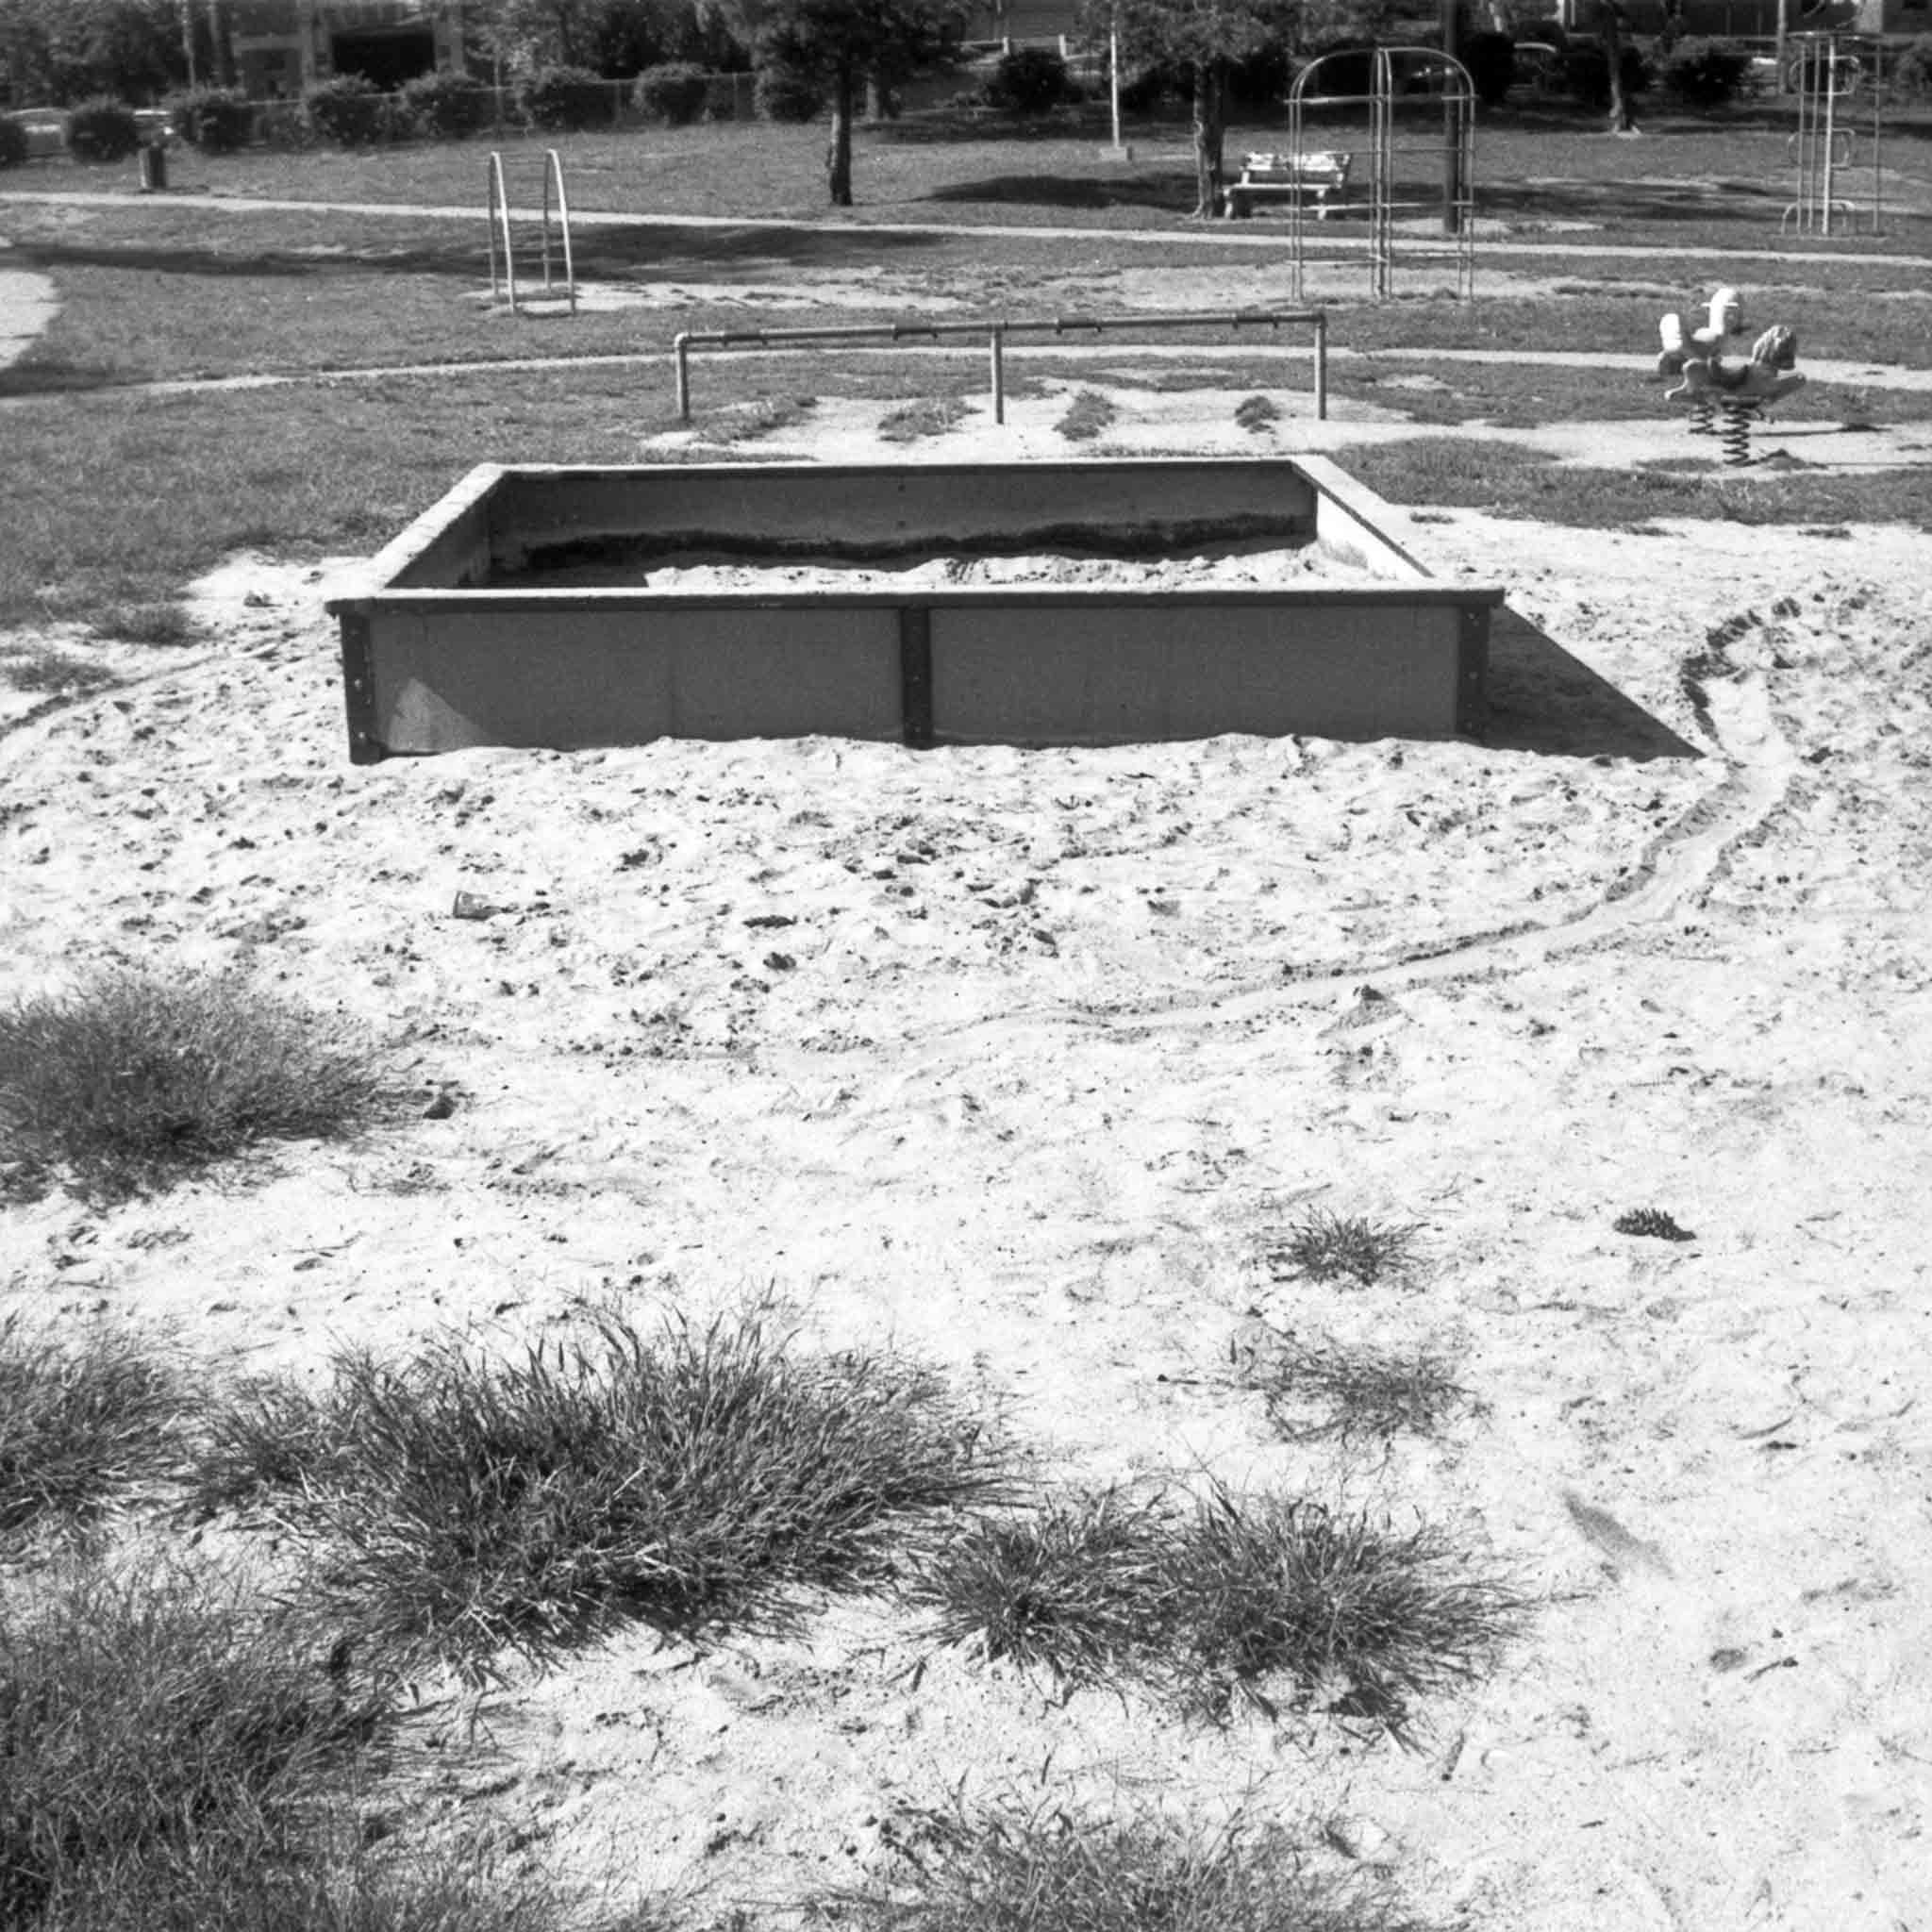 black and white image of a sandbox with a playground in the backgroud